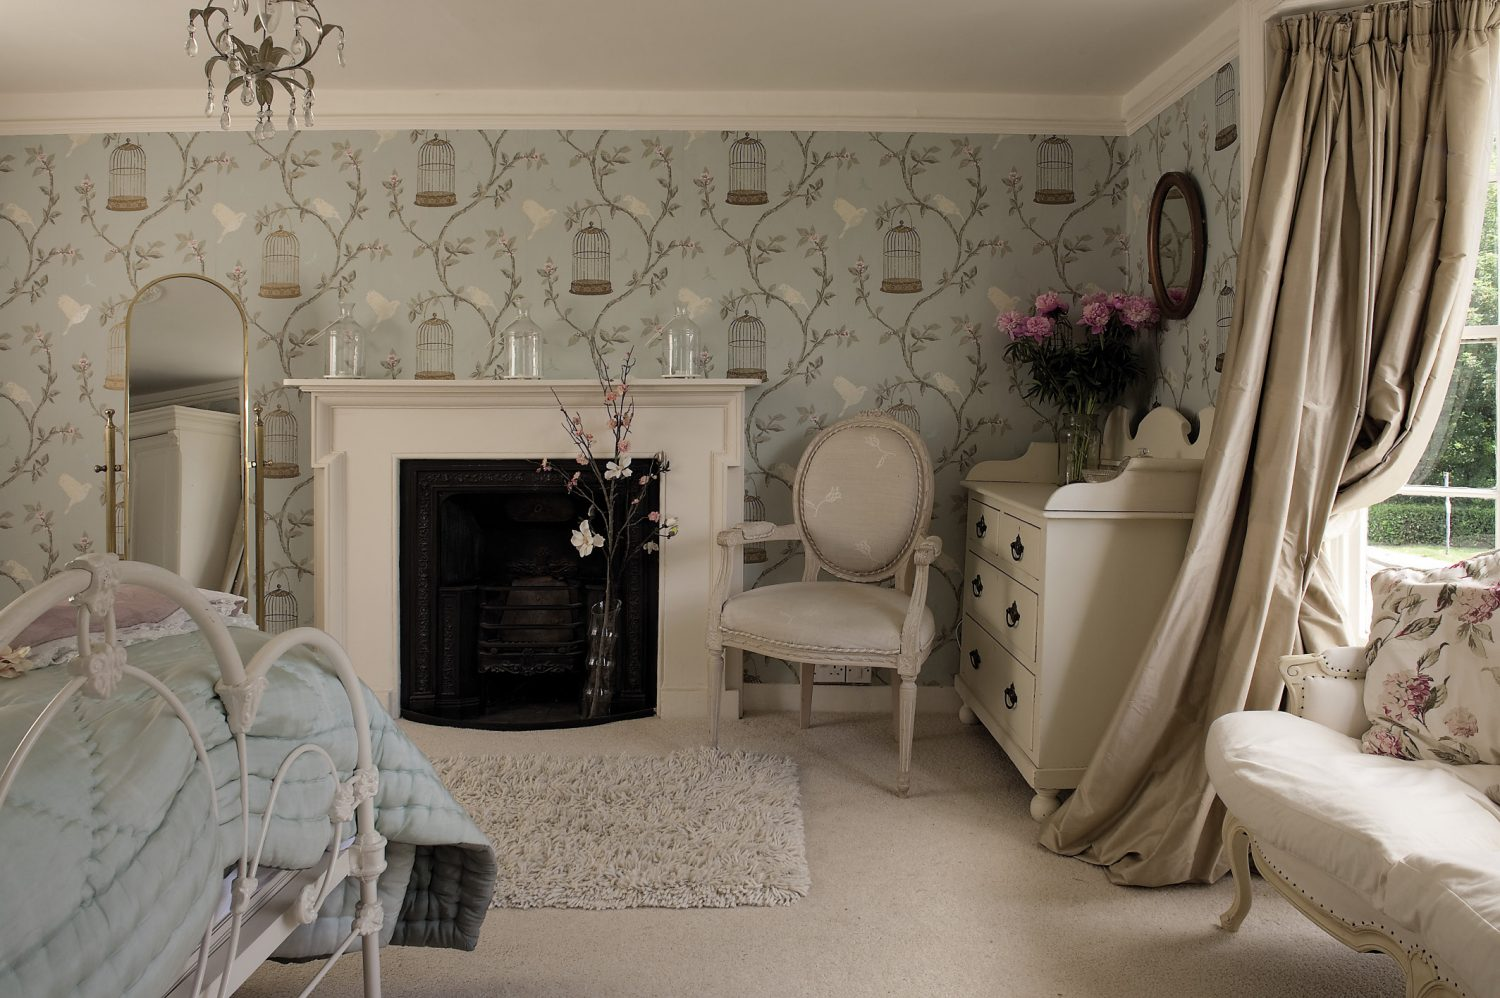 Along the corridor is the 'Chambre Jolie', papered in 'Birdcage Walk' by Nina Campbell. A French 18th century style sofa occupies the space in the bay window and is framed on either side by café au lait-coloured silk curtains. White painted furniture maintains the feeling of light and the iron bed is dressed with a handstitched eau de nil silk quilt